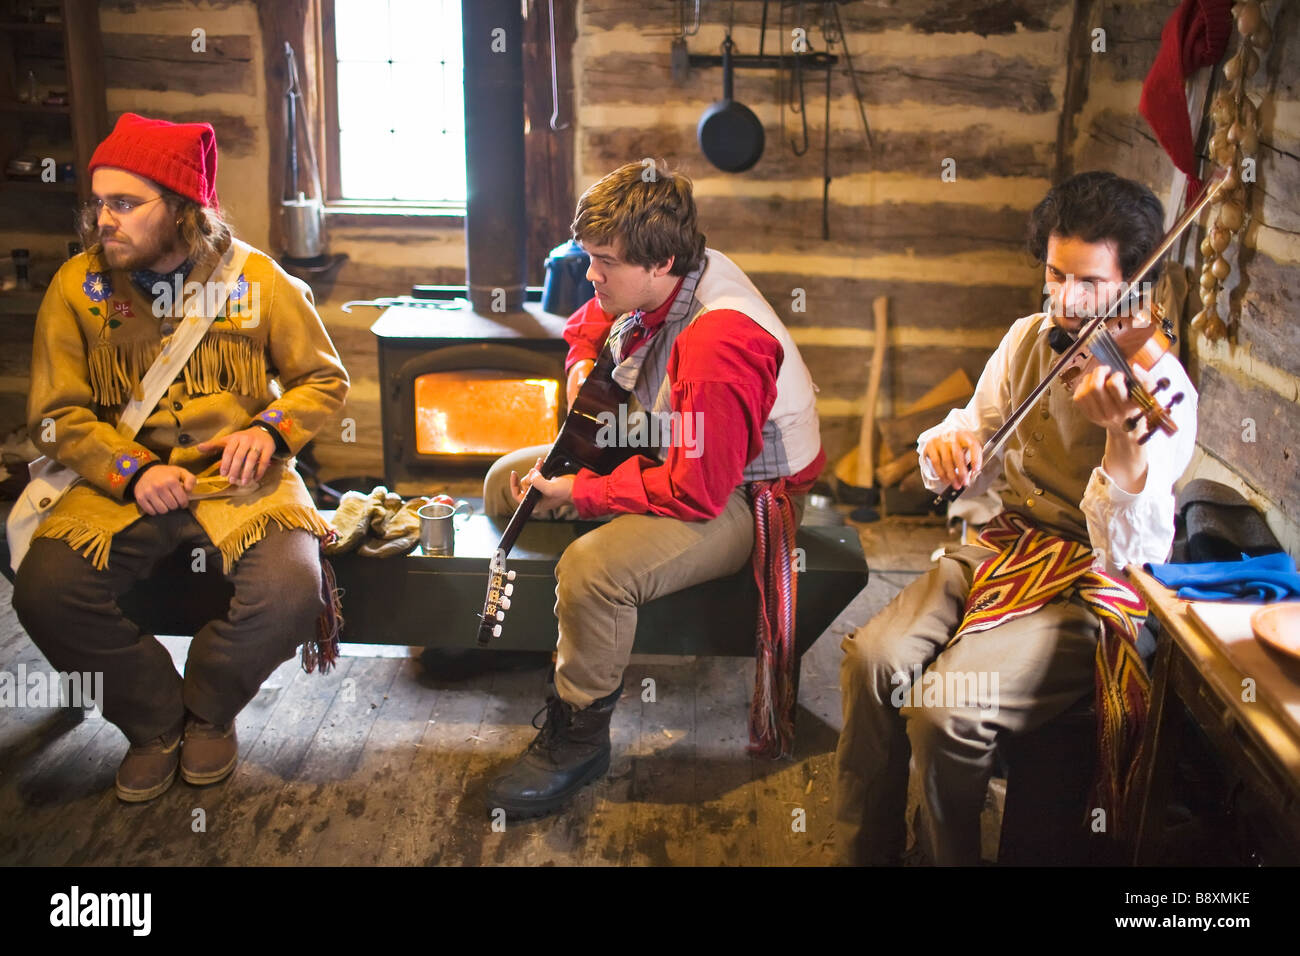 French Canadian musicians, at The Festival Du Voyageur.  Winnipeg, Manitoba Canada. - Stock Image